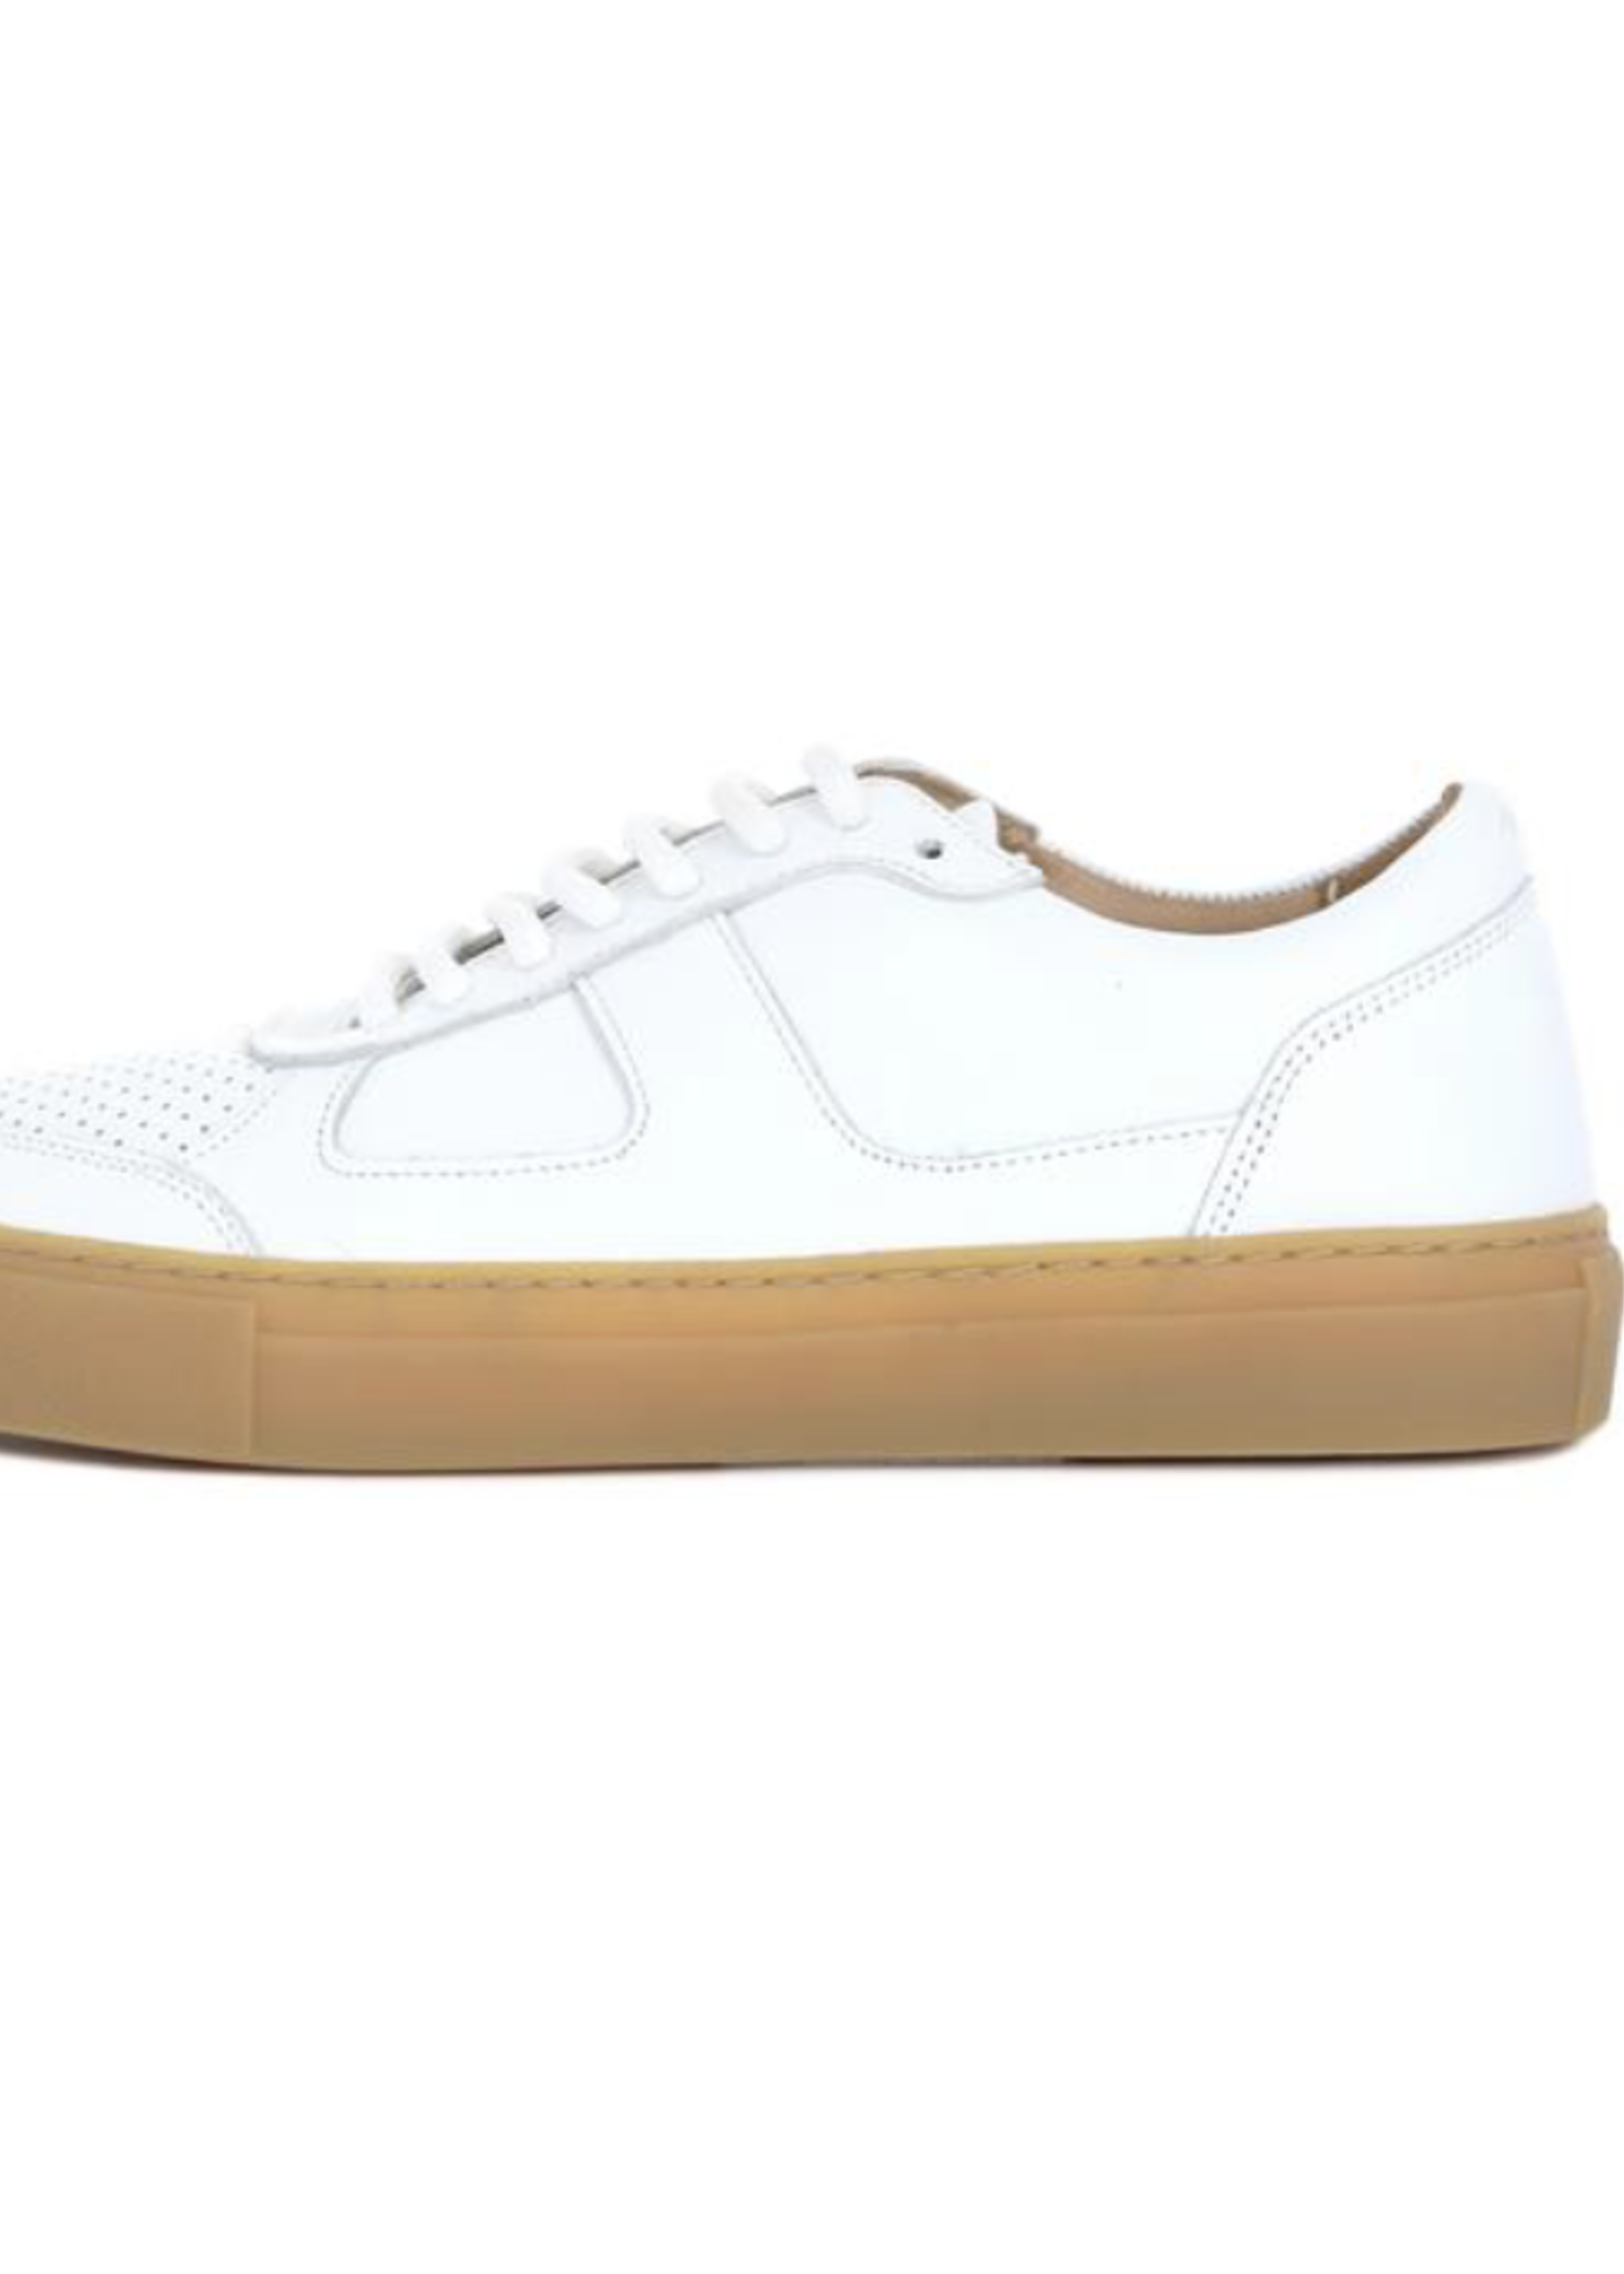 Royal Republiq Royal Repubiq Elpique Tennis Shoe